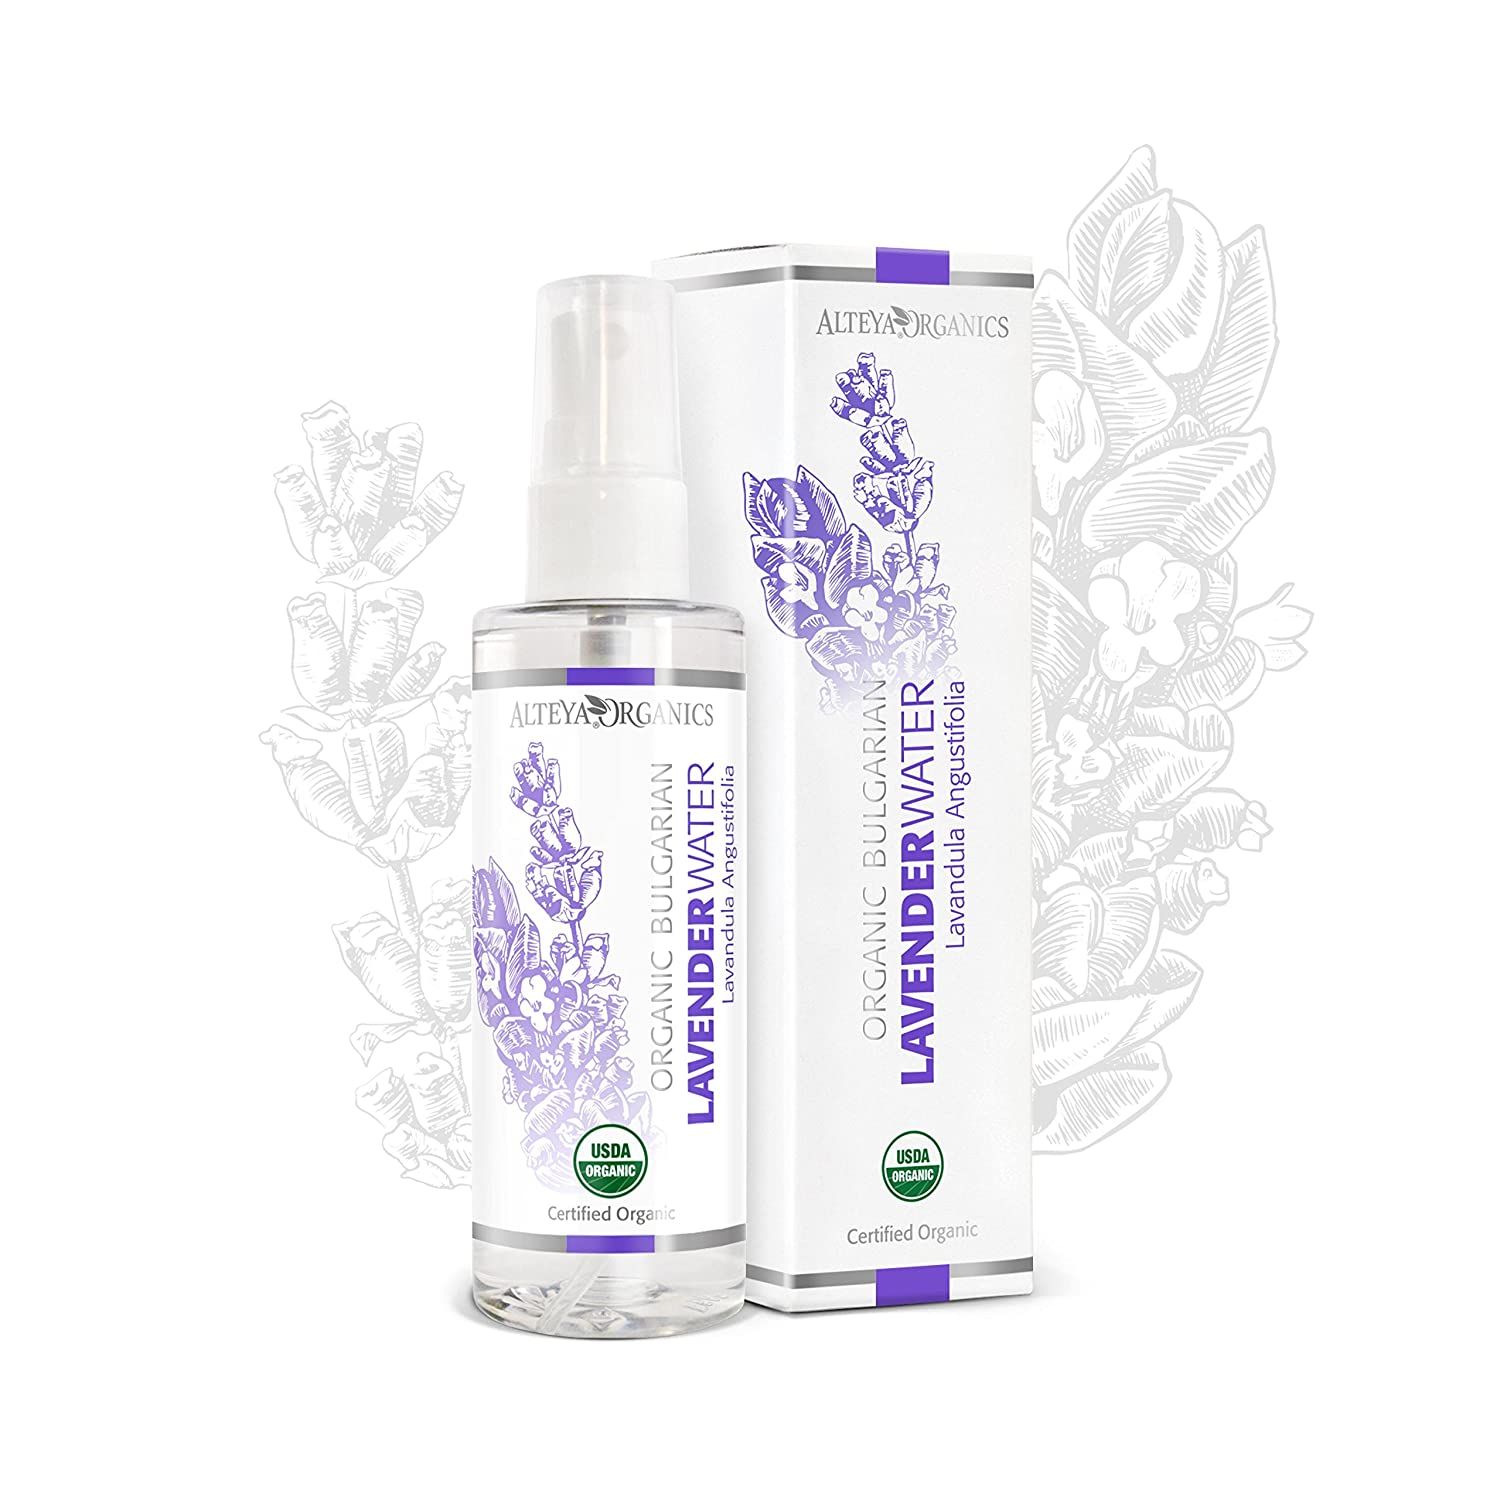 Alteya Organic Lavender Water Spray 100ml - 100% USDA Certified Organic Authentic Pure Natural Flower Water Steam-Distilled and Sold Directly by the Lavender Grower Alteya Organics OLW03S